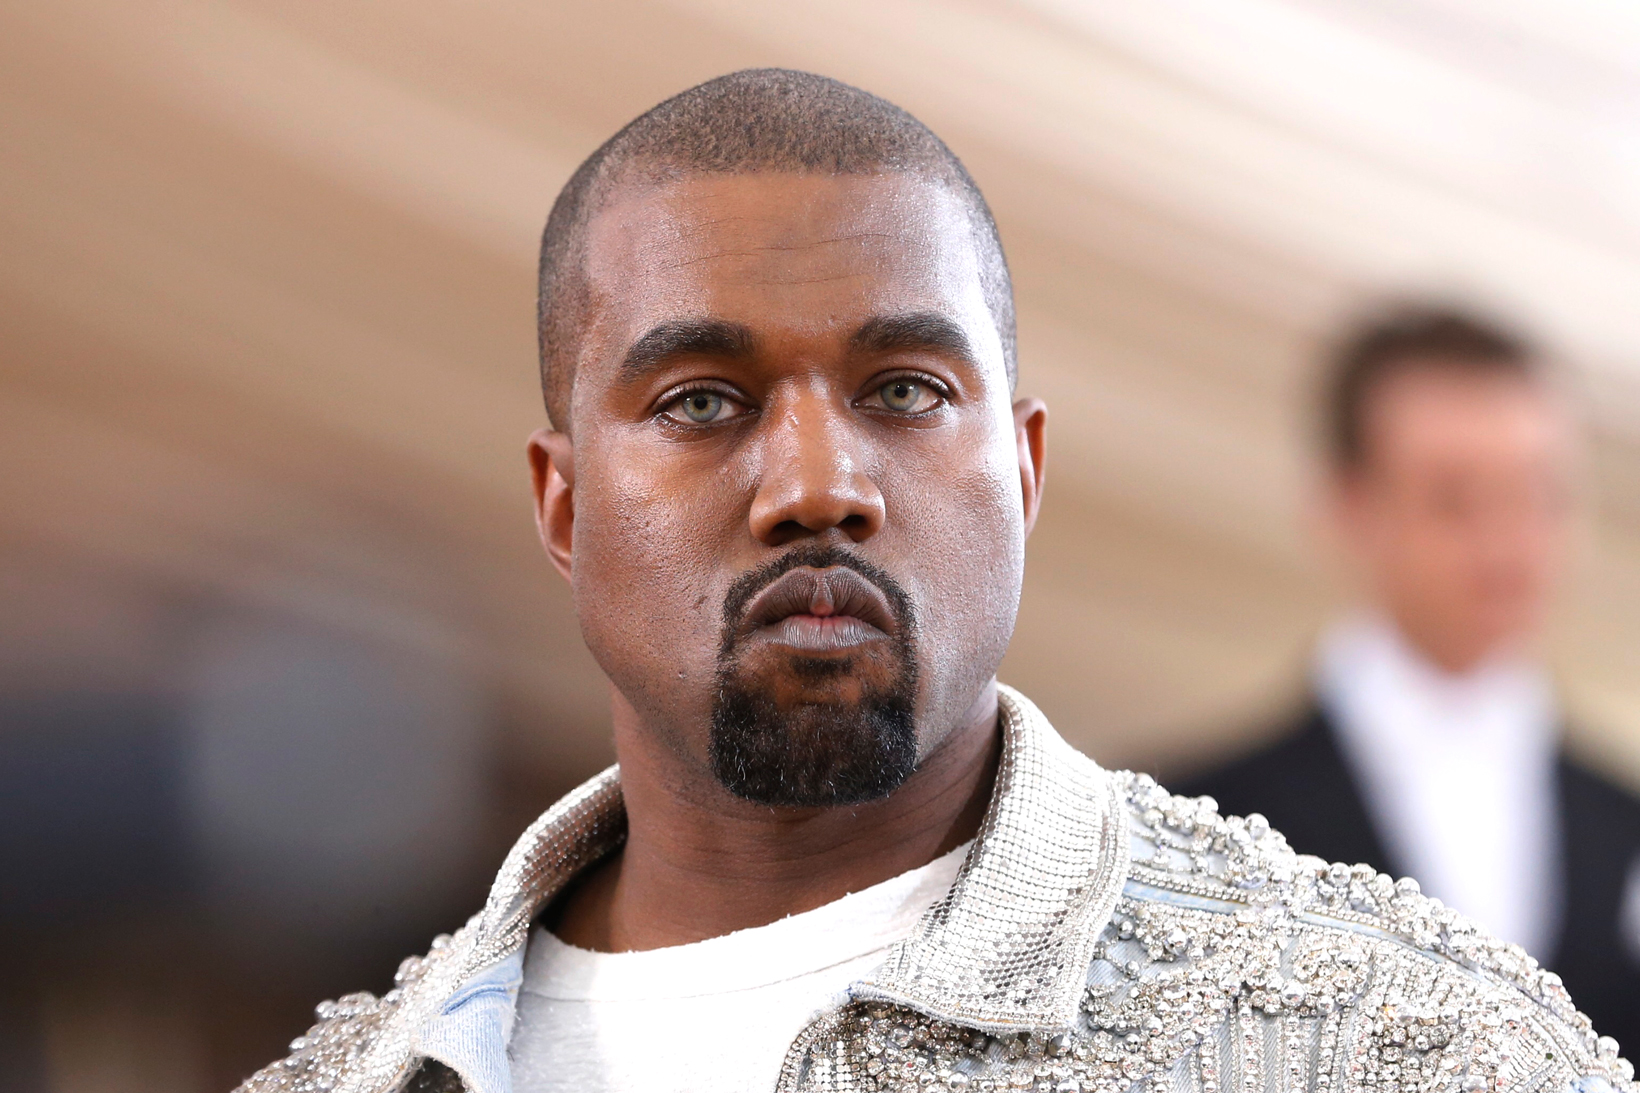 IKEA Finally Responds to Kanye West's Collaboration Offer